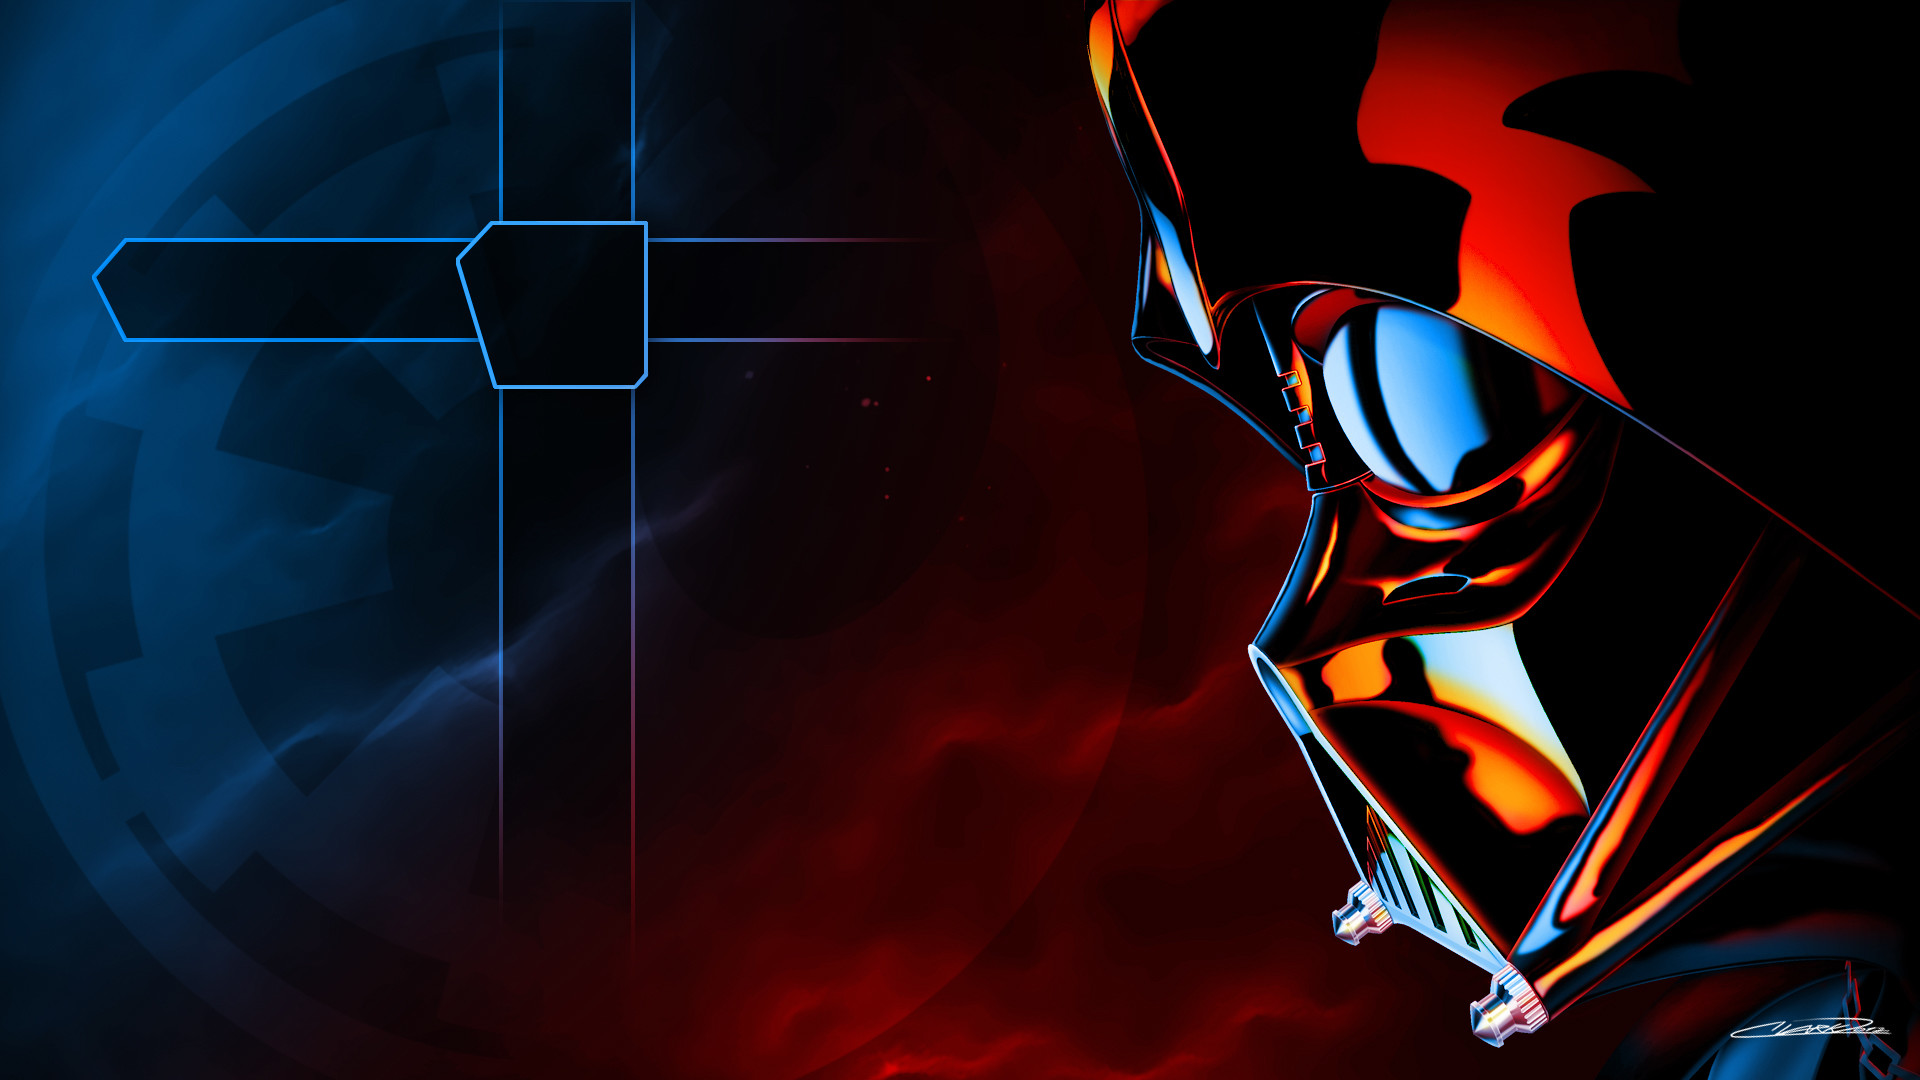 Cool PS3 Backgrounds 65 Images